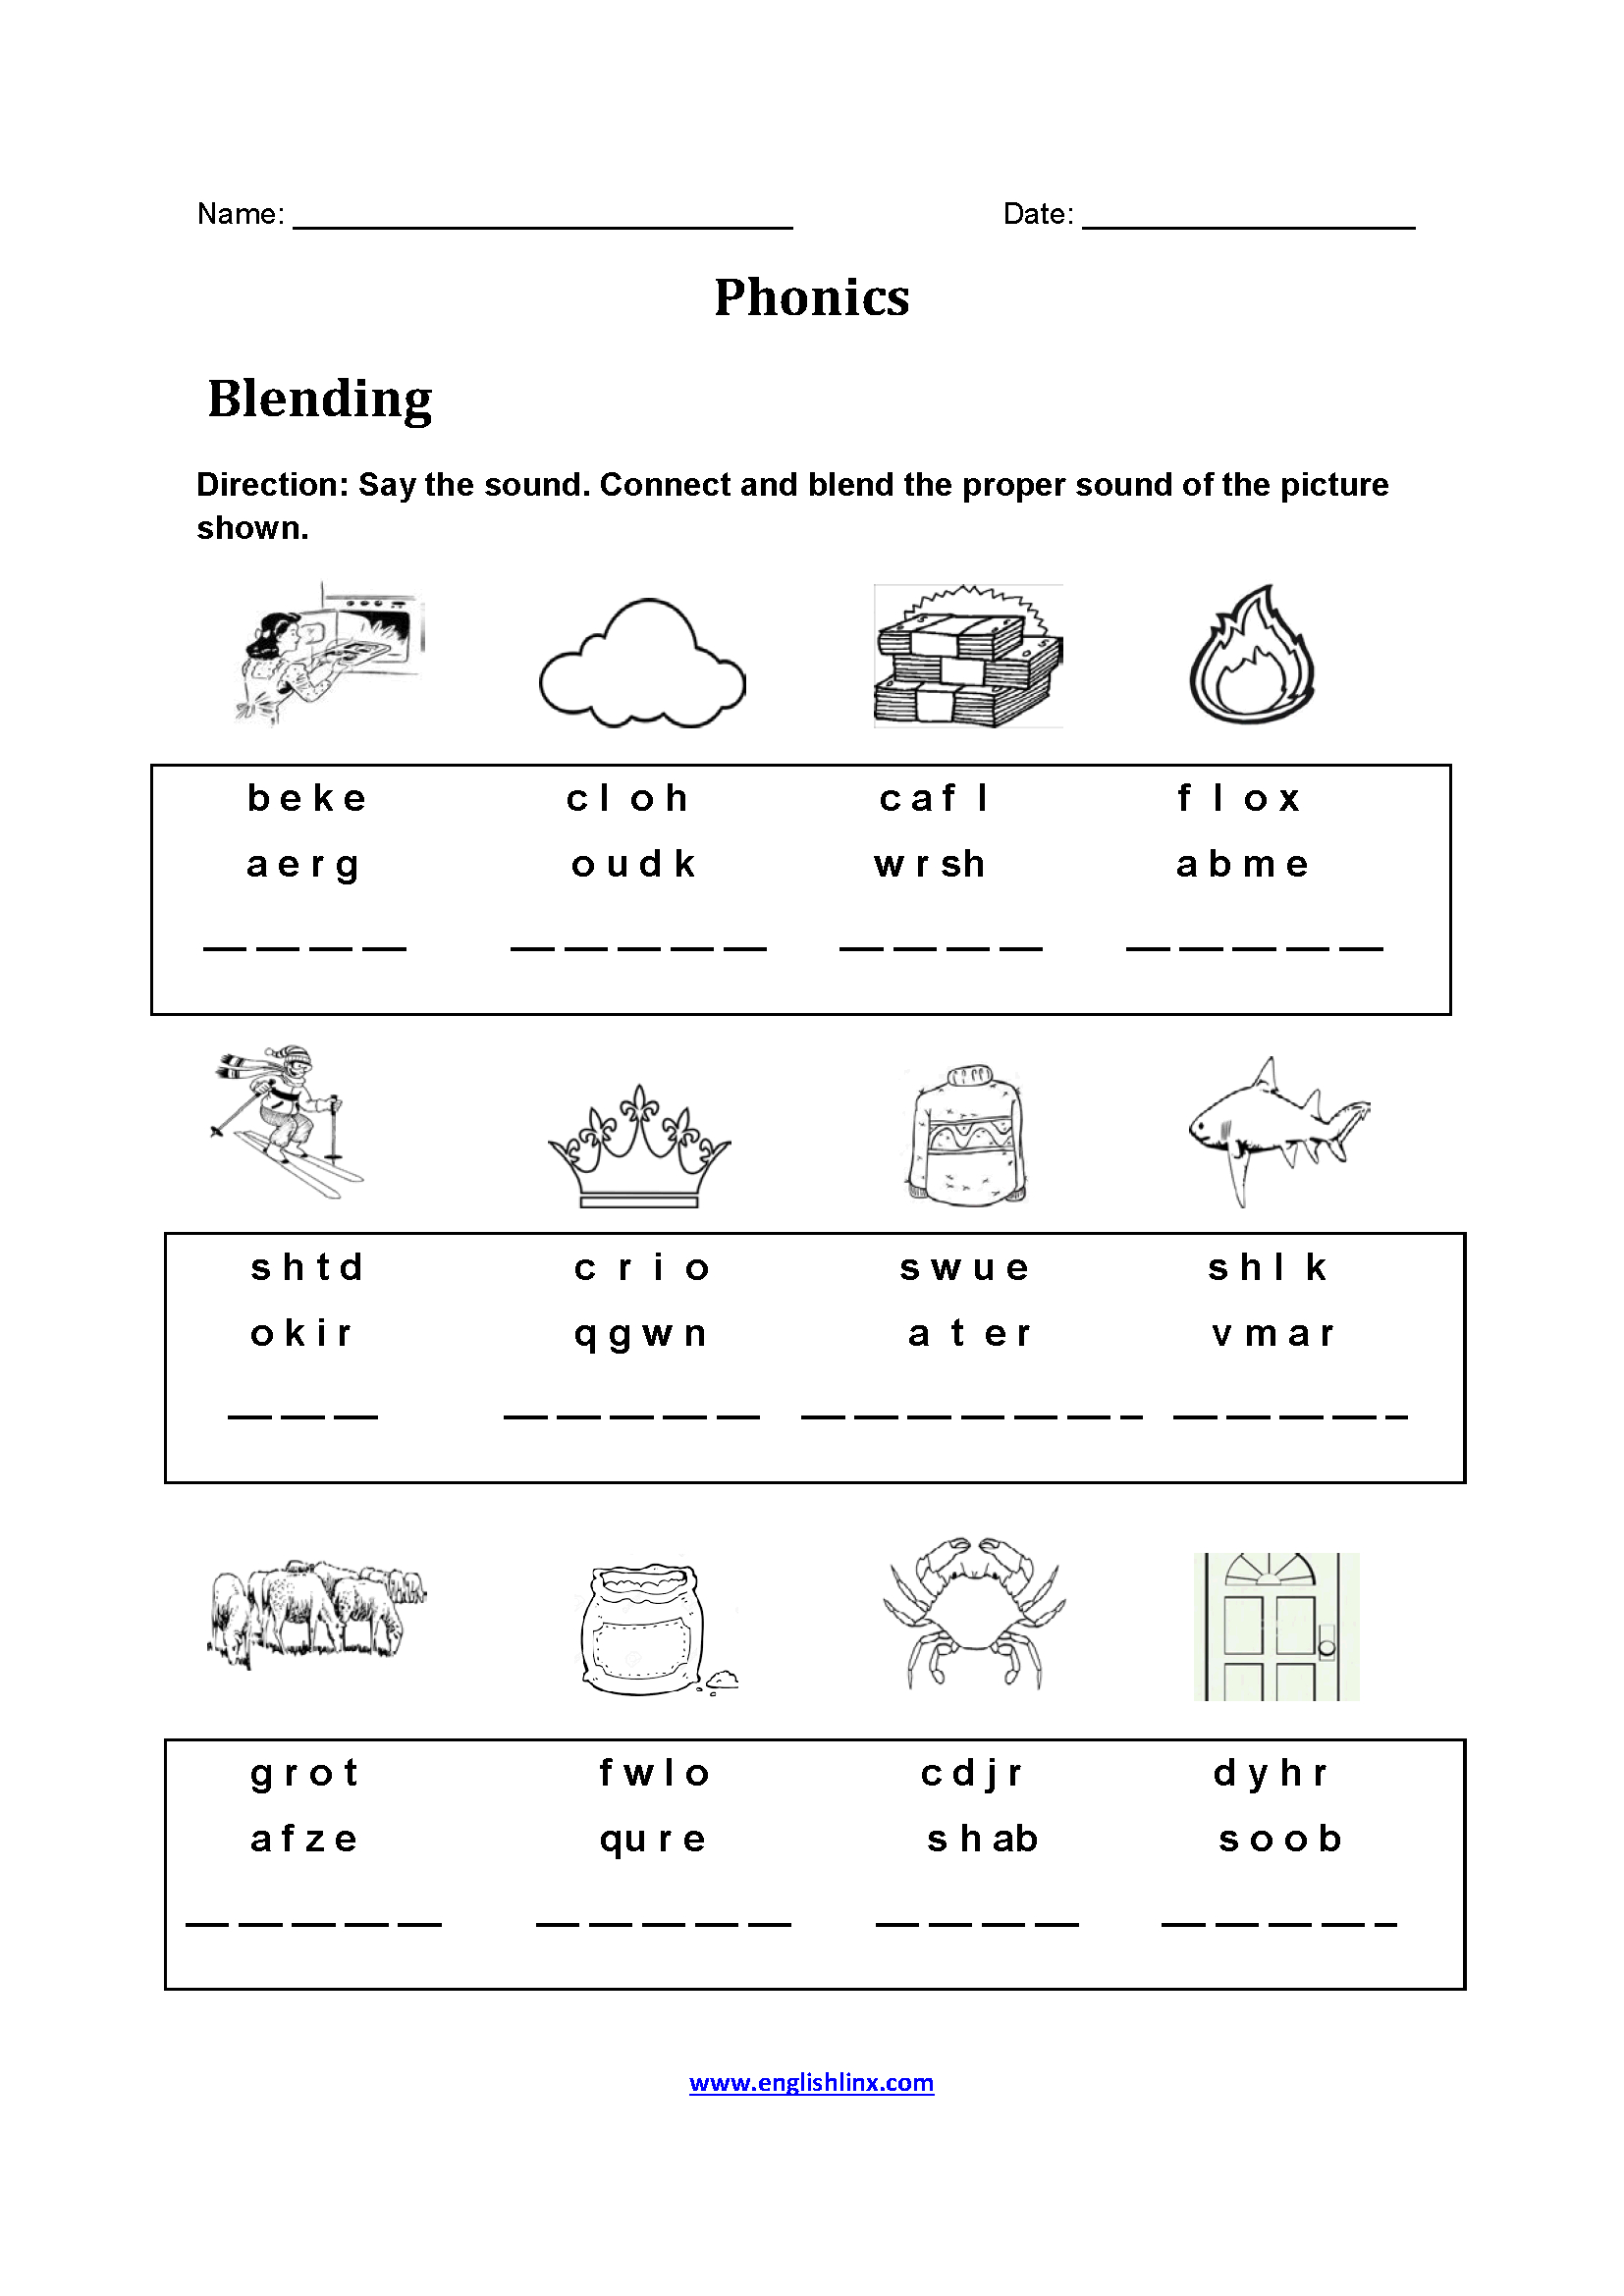 Phonics Worksheets For Adults Printable